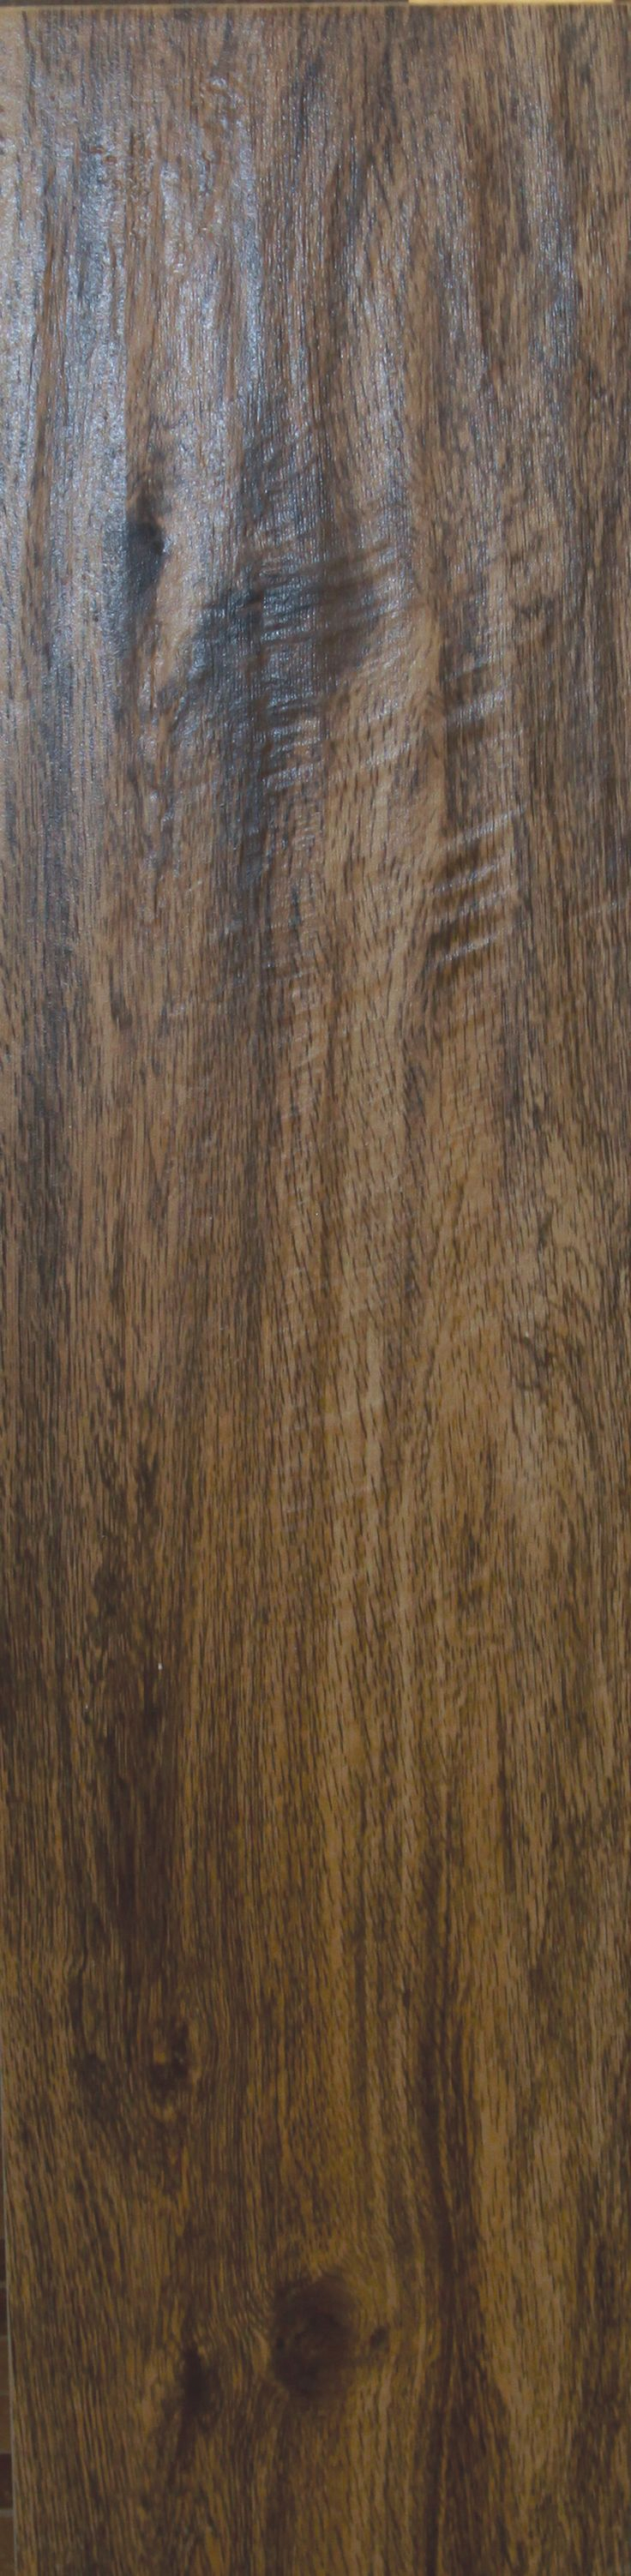 American Heritage Saddle Tile | Marazzi Welcomes Their Newest Addition, American Heritage a Wood Look ...